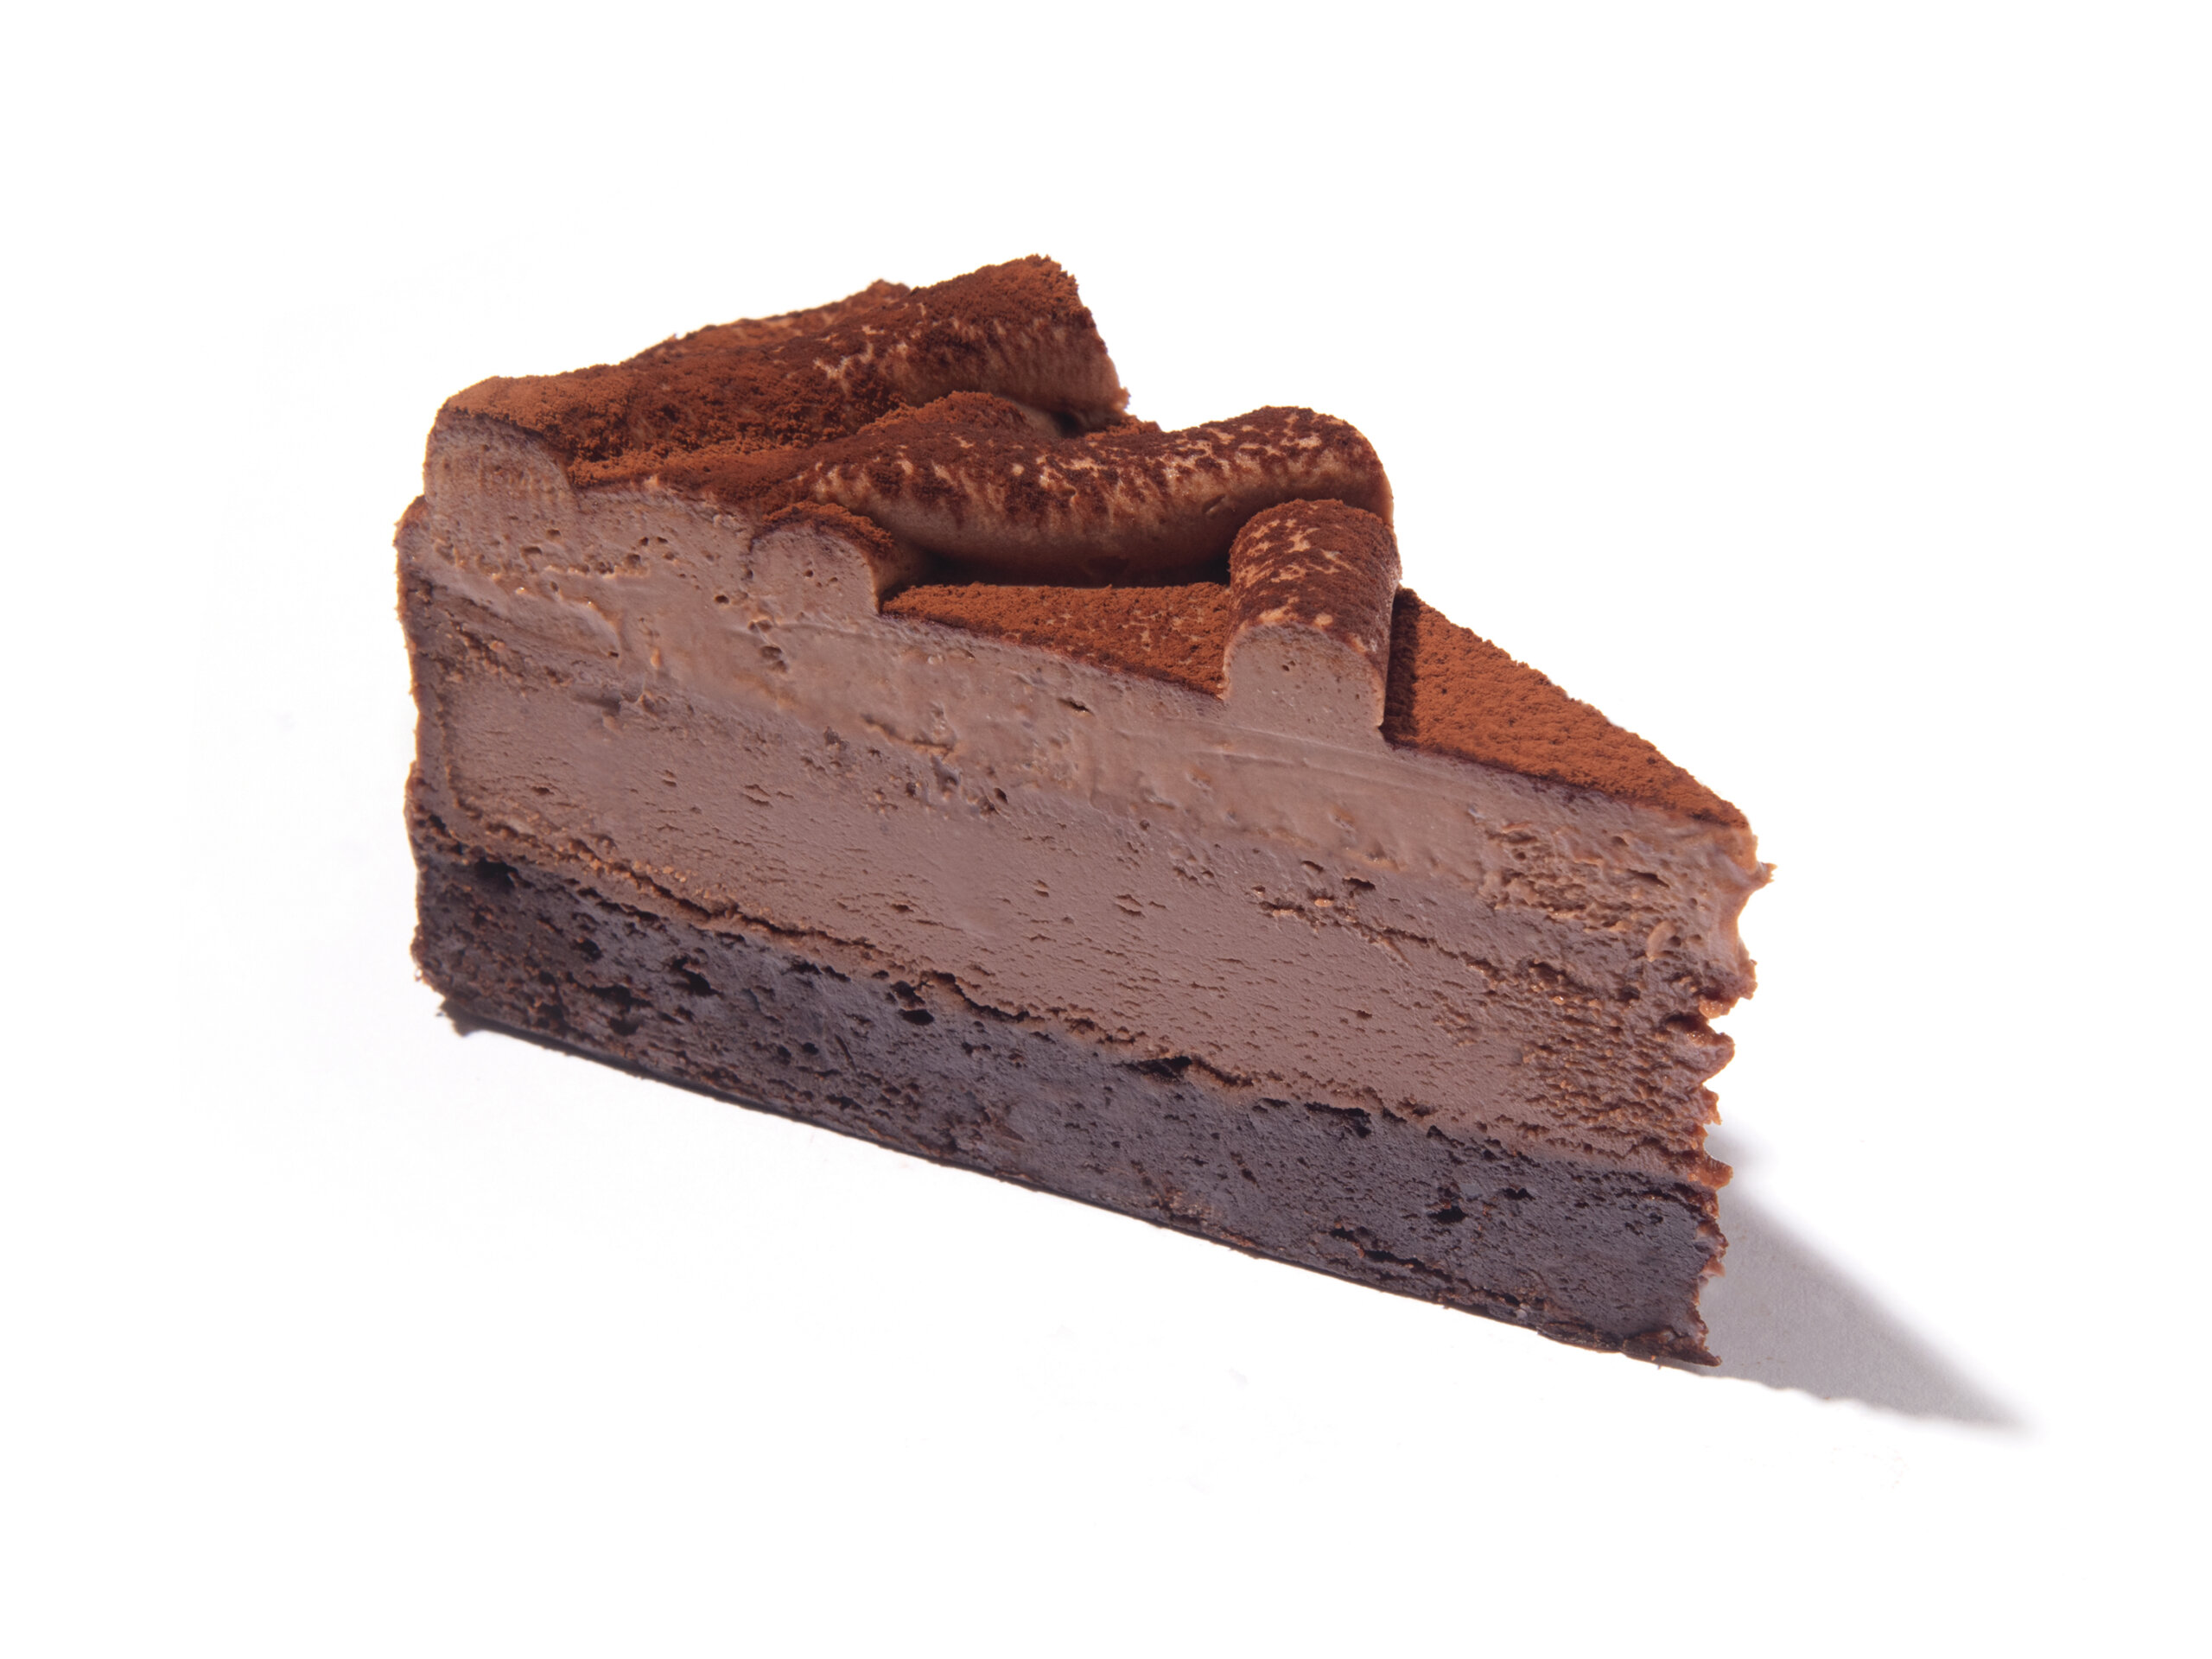 A slice of Eli's Double Chocolate Cheesecake made with Ghirardelli